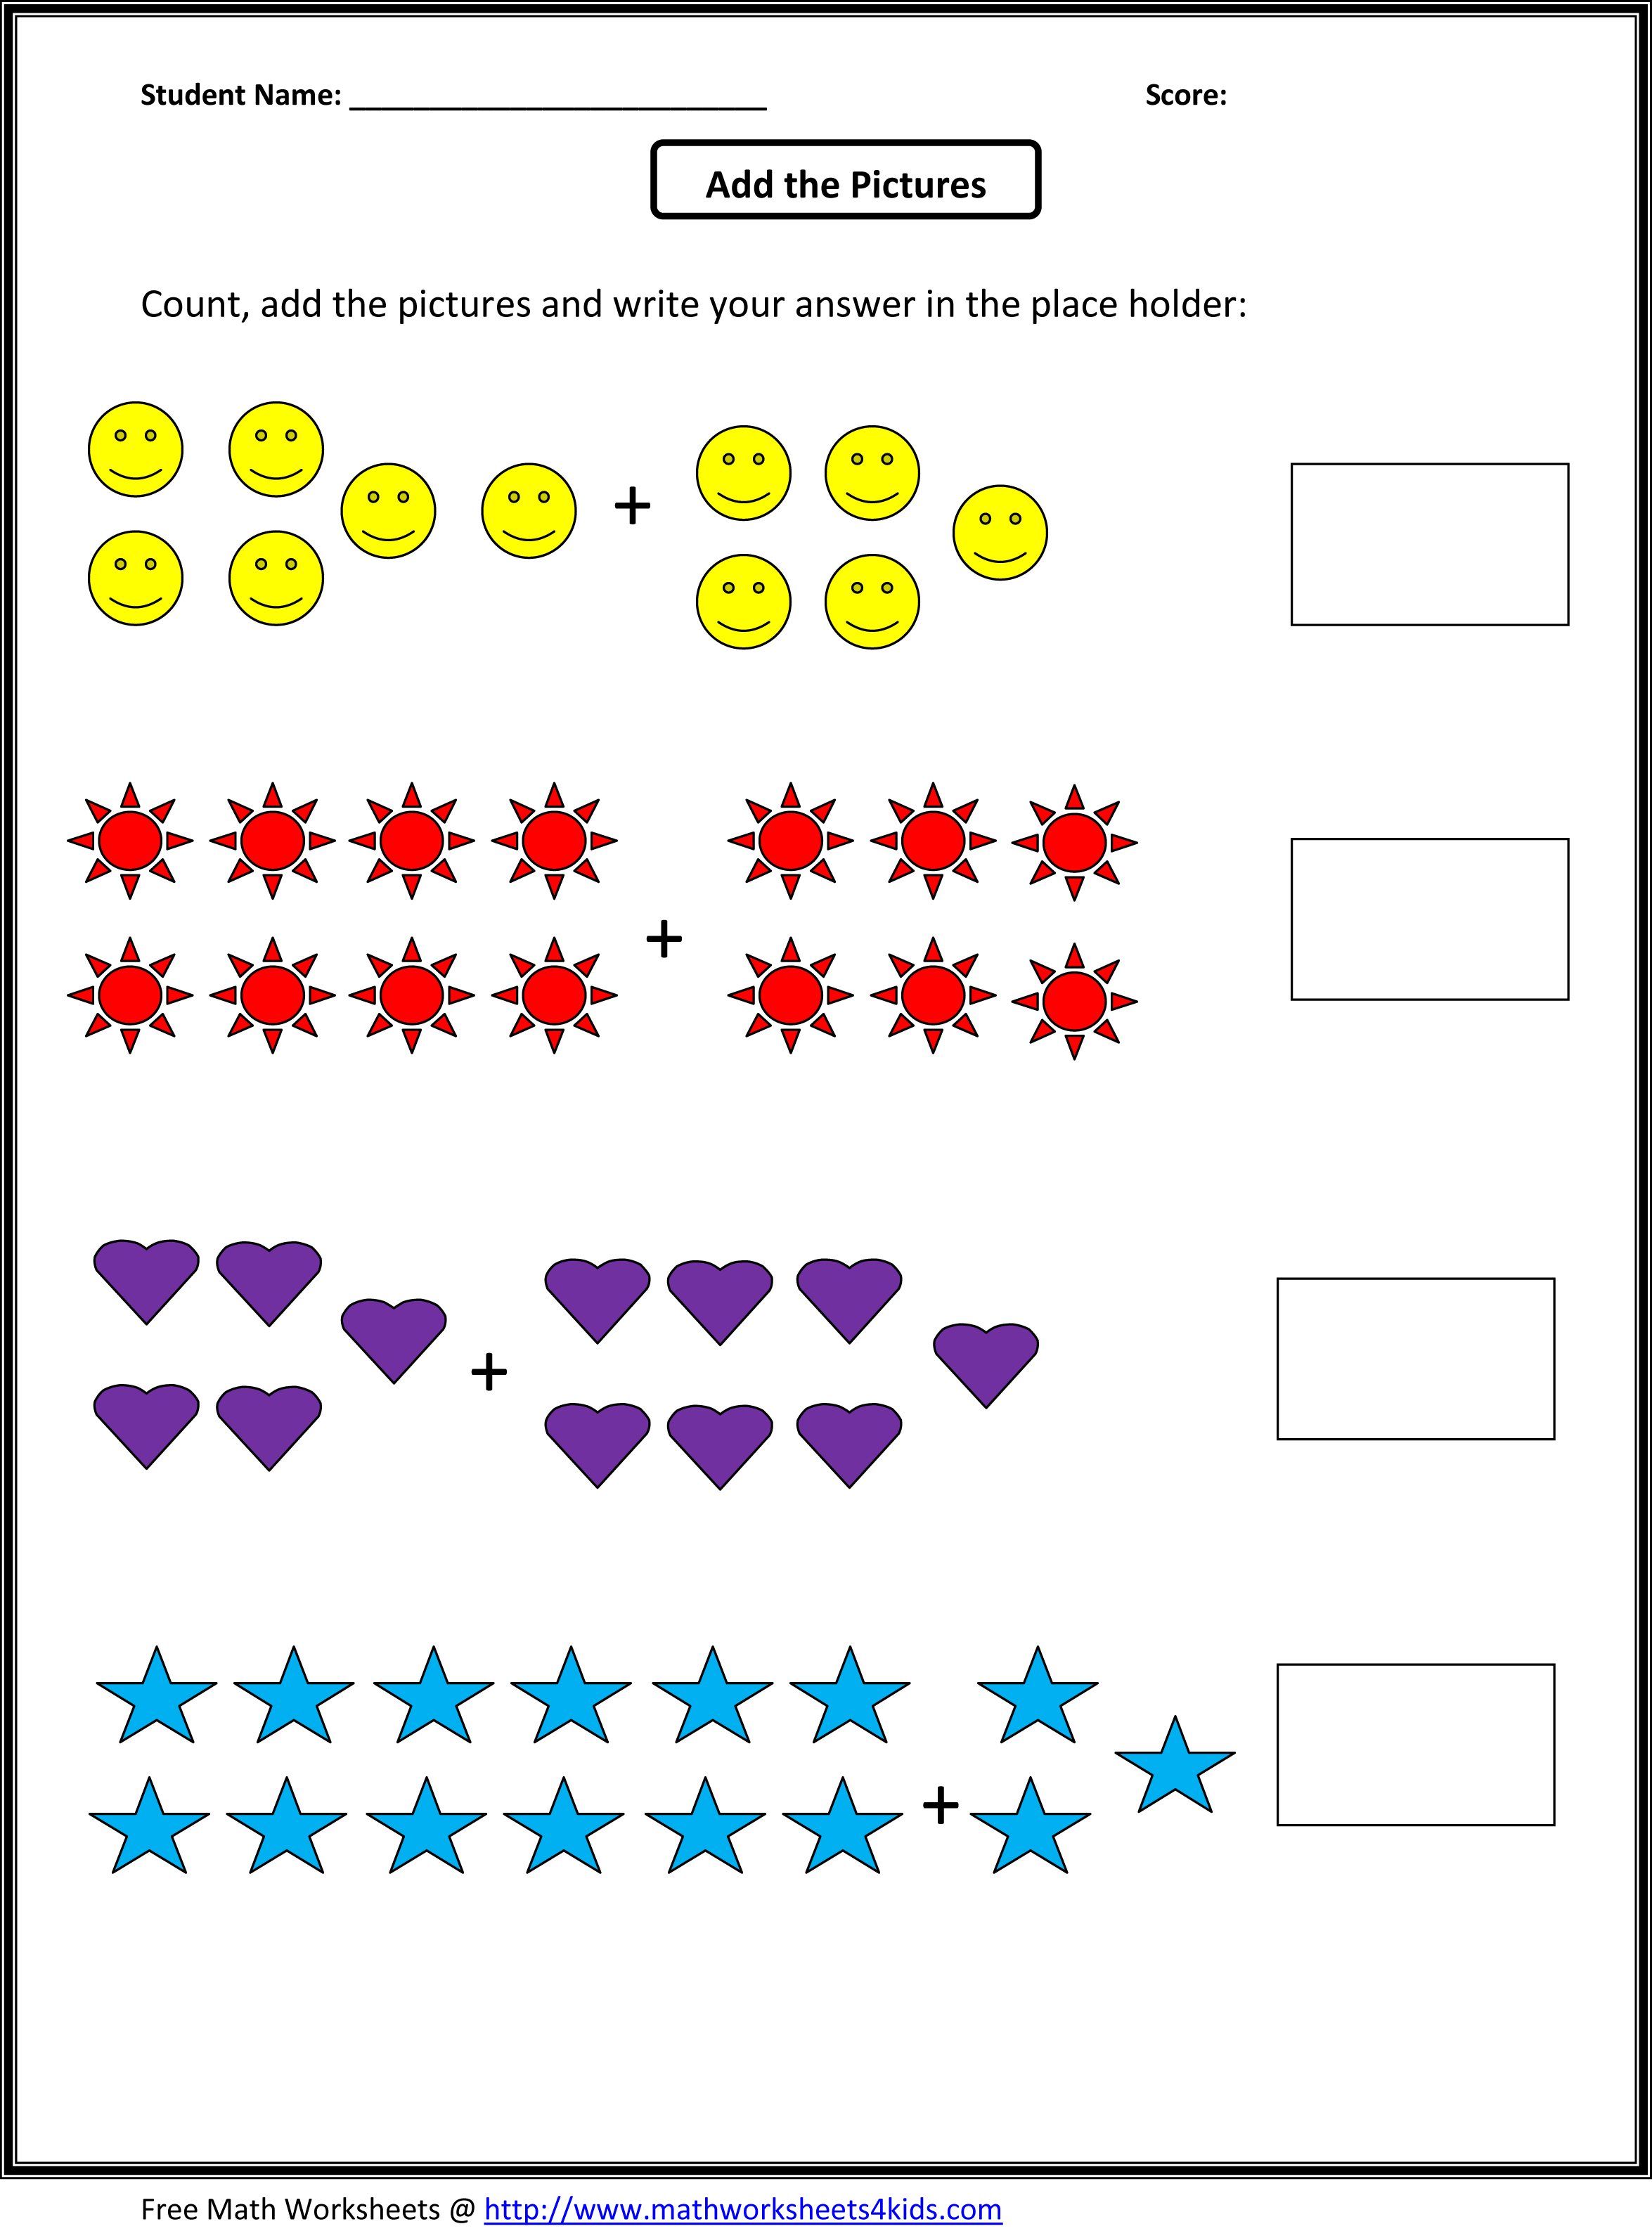 Weirdmailus  Pretty Grade  Maths Worksheet  Reocurent With Lovely Math Worksheets For St Grade Free  Reocurent With Enchanting Worksheet On Comprehension For Grade  Also Converting Metric Units Worksheet Th Grade In Addition Parts Of A Whole Worksheet And Repeated Subtraction Worksheet As Well As Th Digraph Worksheets First Grade Additionally The Little Red Hen Worksheets Free From Reocurentcom With Weirdmailus  Lovely Grade  Maths Worksheet  Reocurent With Enchanting Math Worksheets For St Grade Free  Reocurent And Pretty Worksheet On Comprehension For Grade  Also Converting Metric Units Worksheet Th Grade In Addition Parts Of A Whole Worksheet From Reocurentcom